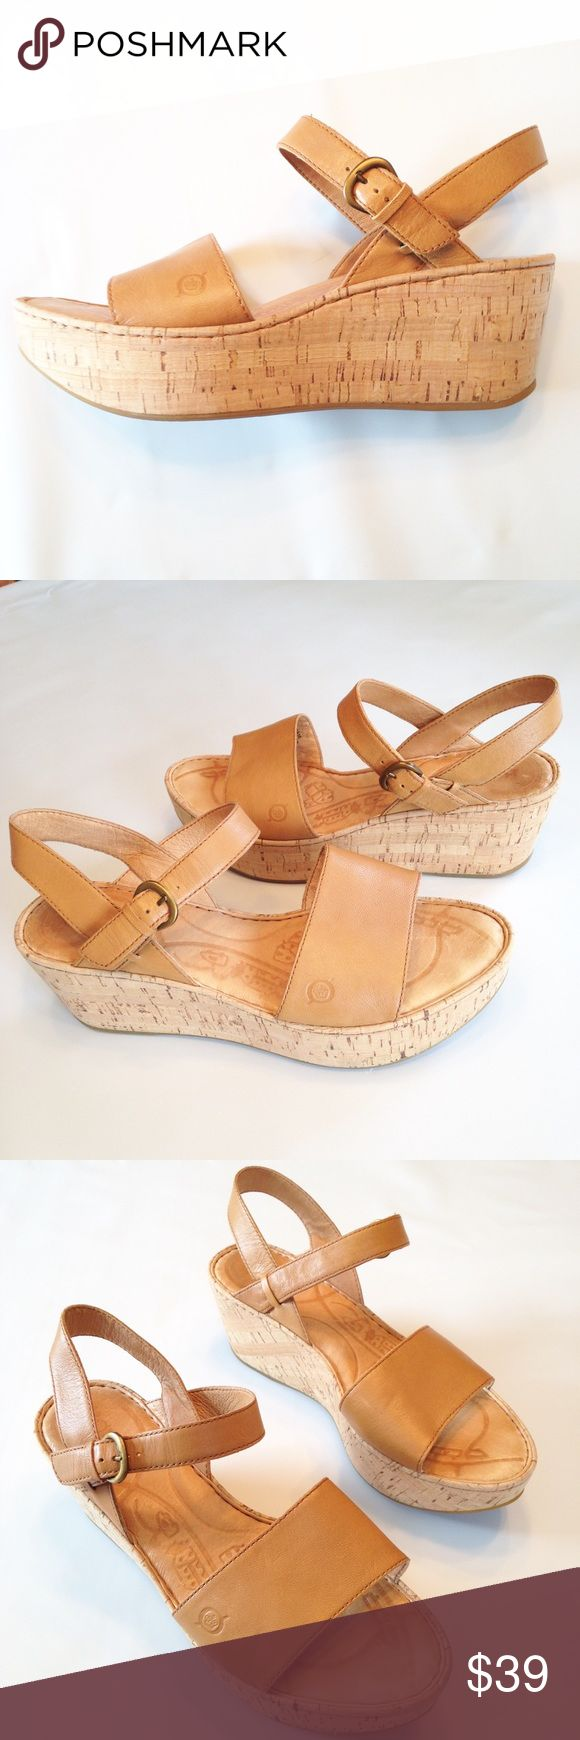 Born 9 Platform Leather Sandal Camel Brown EUC Born 9 Platform Leather Sandal Camel Brown EUC. Adjustable strap with buckle at ankle. Almost no sign of wear, as pictured. Leather upper & lining make this a comfortable quality shoe. Born Shoes Platforms